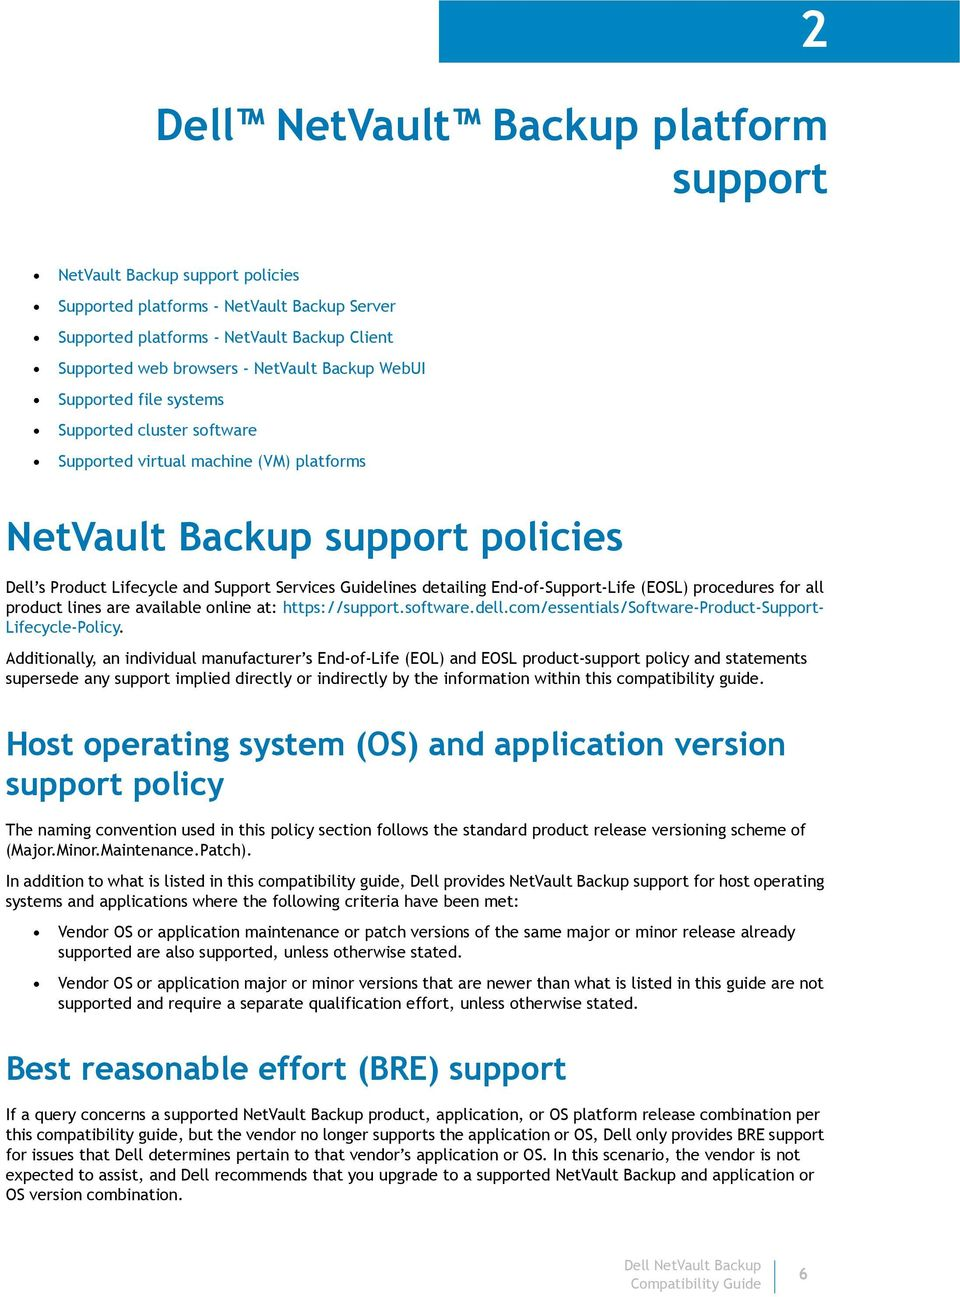 detailing End-of-Support-Life (EOSL) procedures for all product lines are available online at: https://support.software.dell.com/essentials/software-product-support- Lifecycle-Policy.